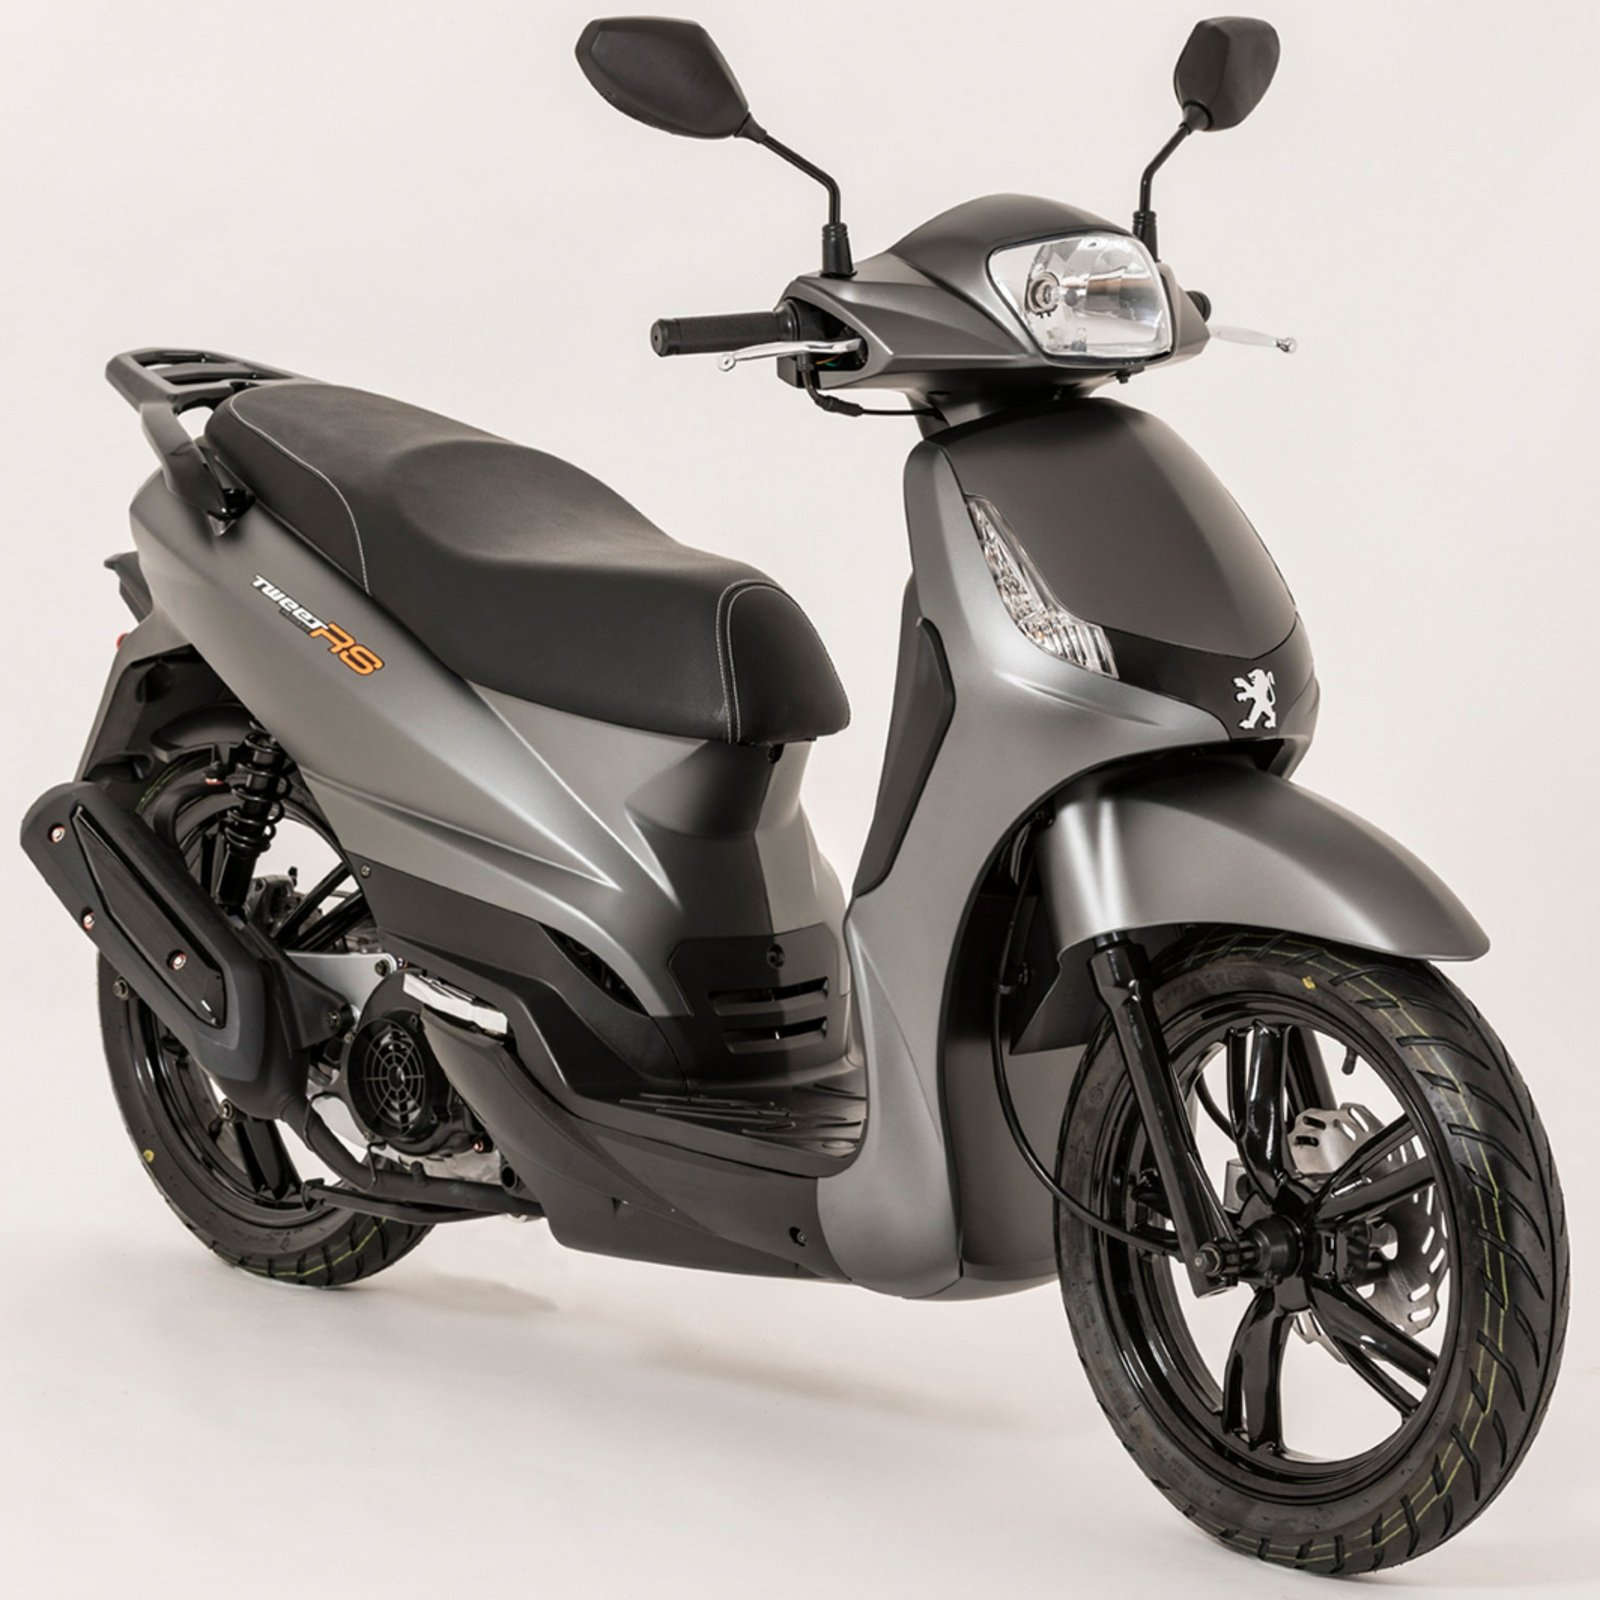 Automatic Transmission Motorcycle >> 2013 Peugeot Tweet RS Review - Top Speed